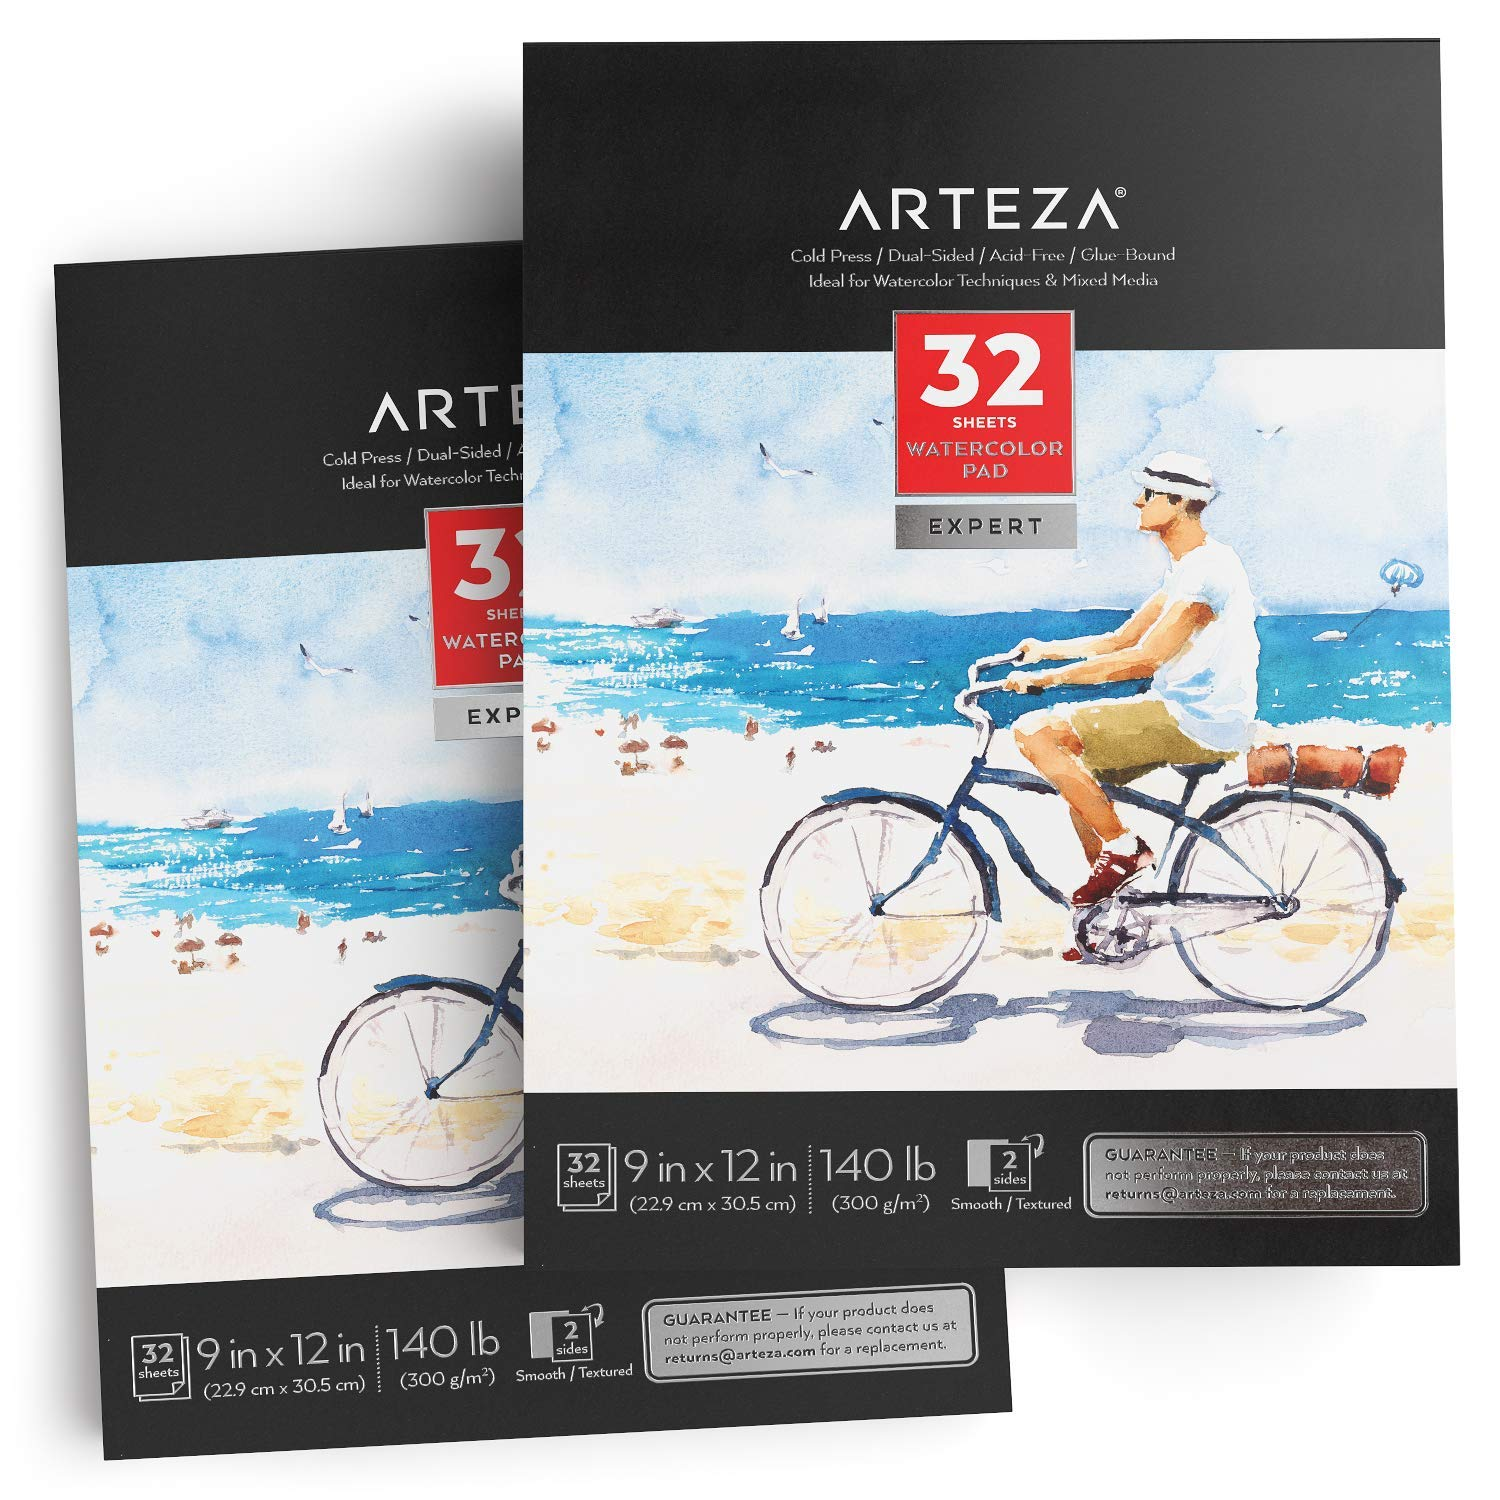 ARTEZA 9x12'' Expert Watercolor Pad, Pack of 2, 64 Sheets (140lb/300gsm), Cold Pressed, Acid Free Paper, 32 Sheets Each, Ideal for Watercolor Techniques and Mixed Media by ARTEZA